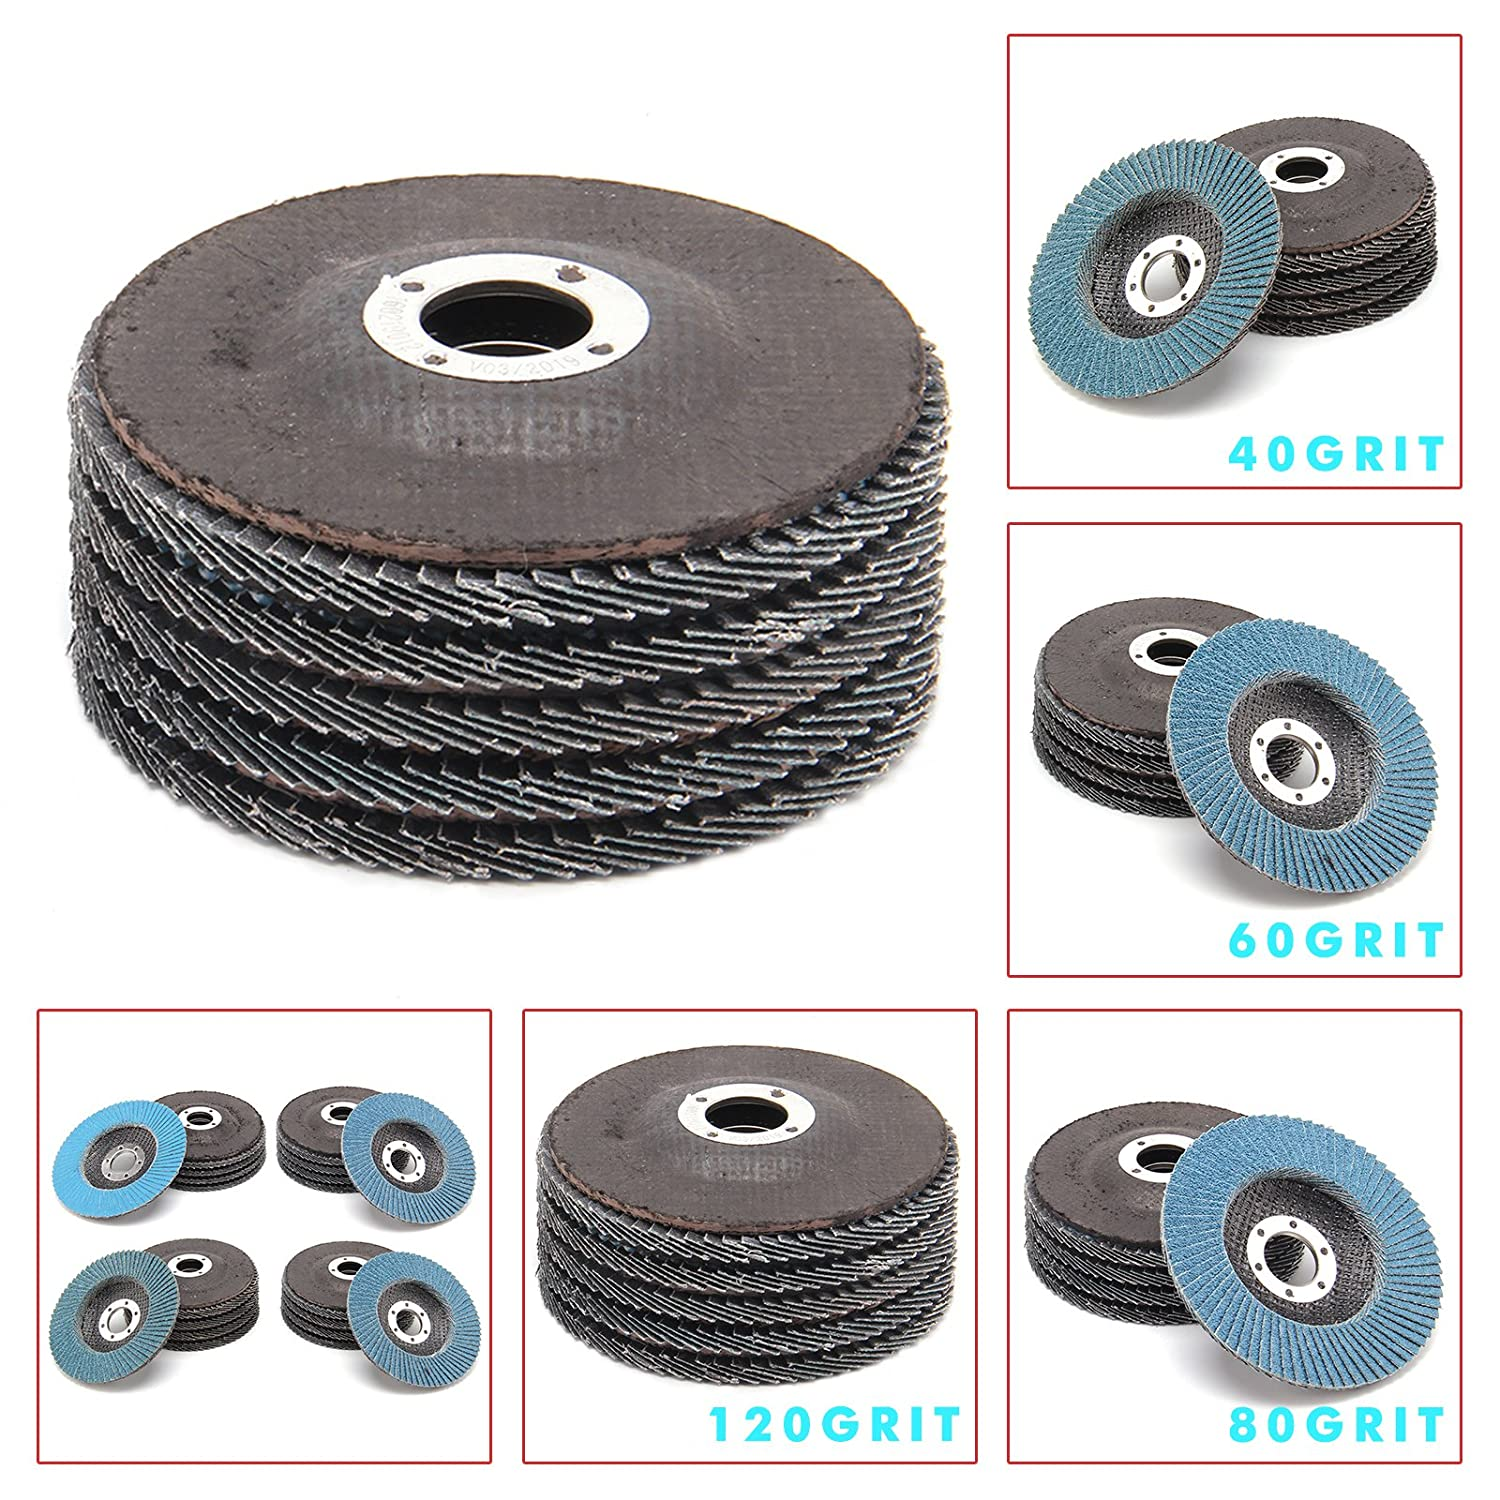 MultiWare 20 x Flap Discs 115mm 4.5' 40 60 80 120 Grift For Sanding Cleaning Stainless oem